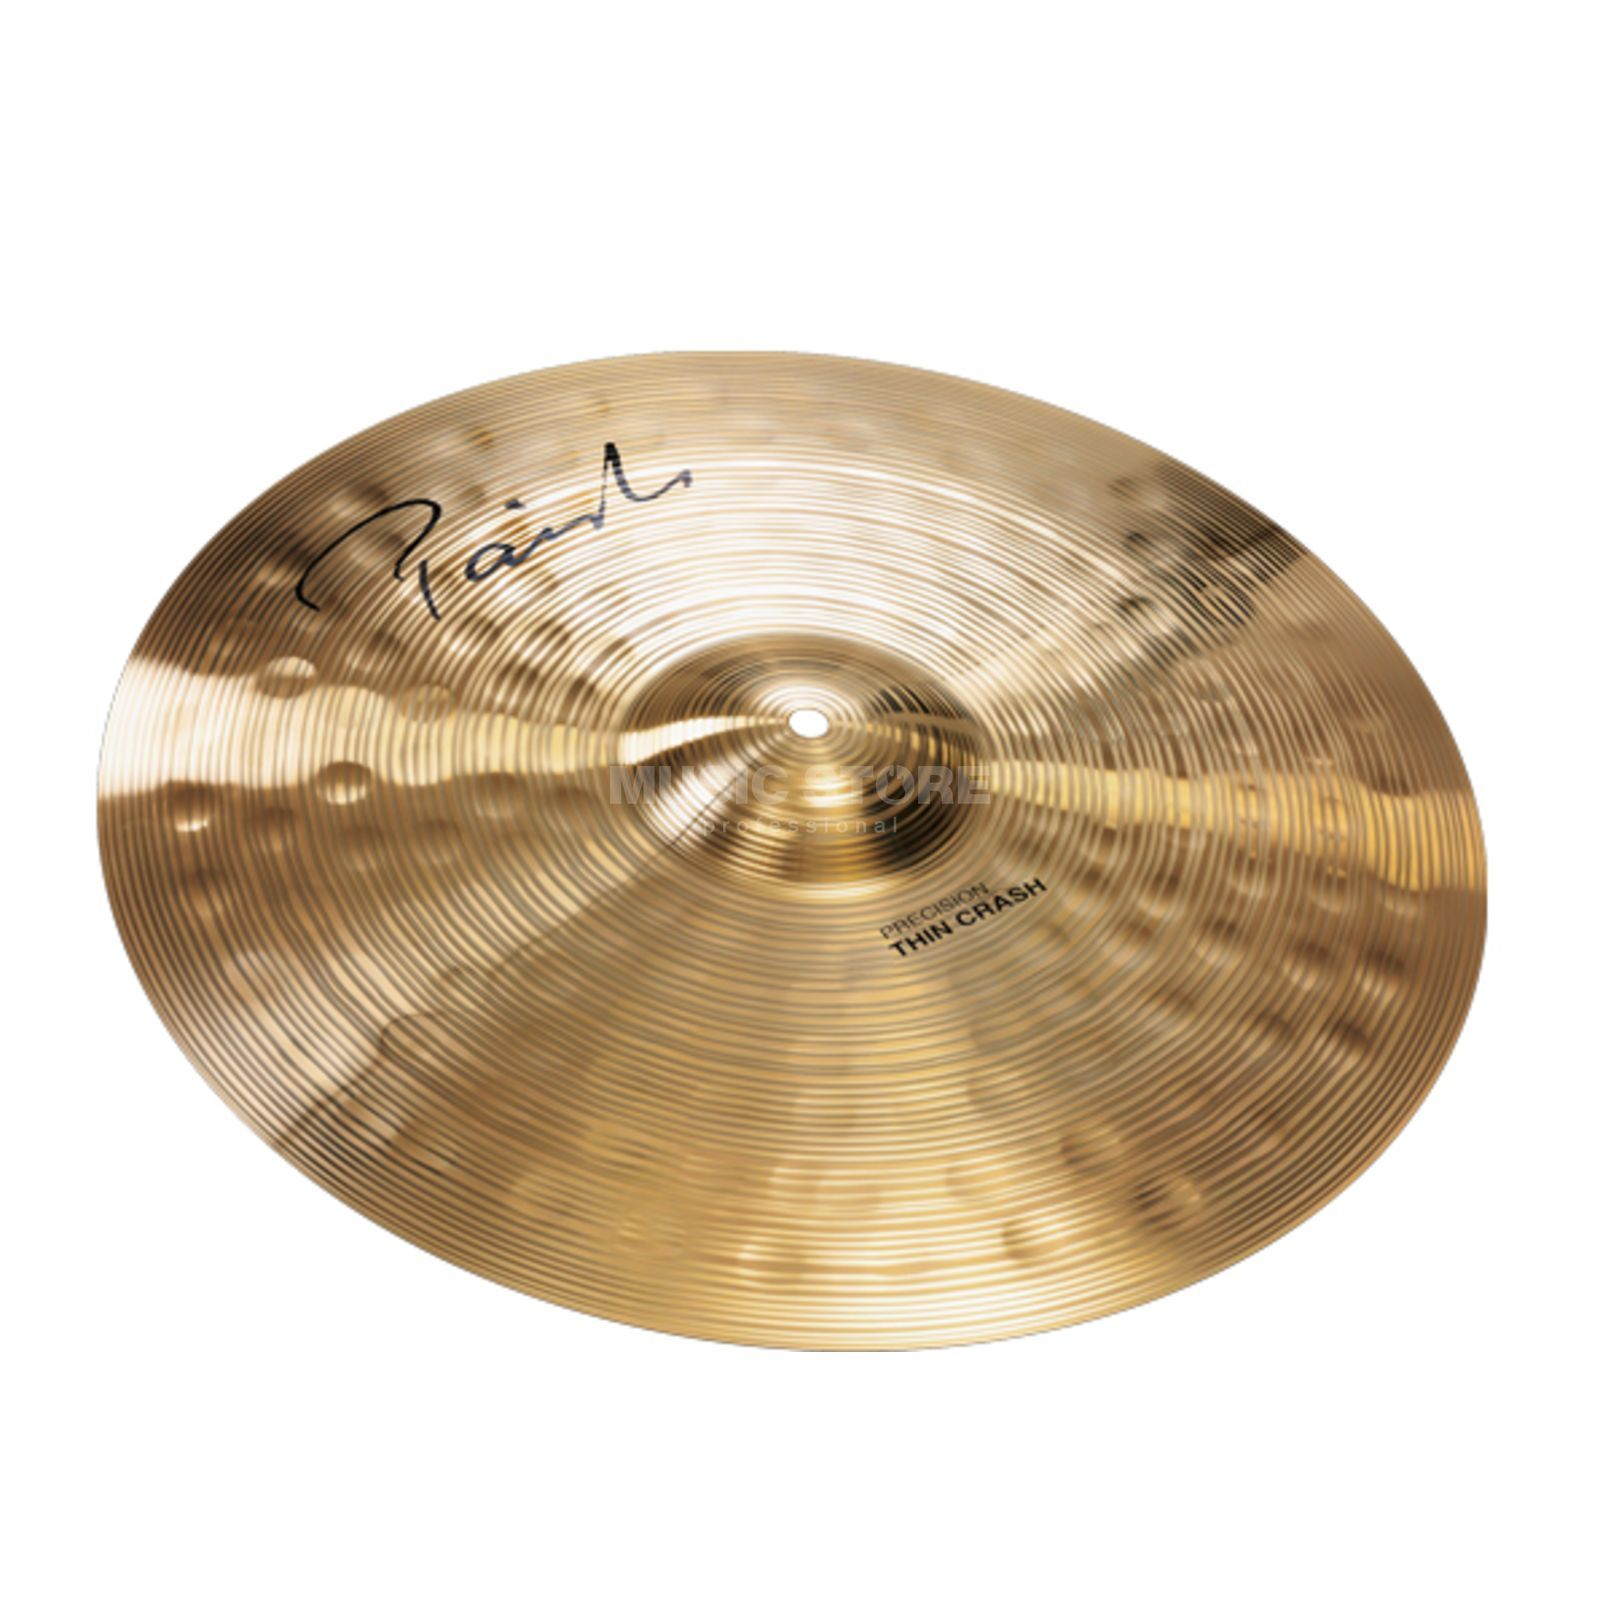 "Paiste Signature Precision Thin Crash 16"" Produktbild"